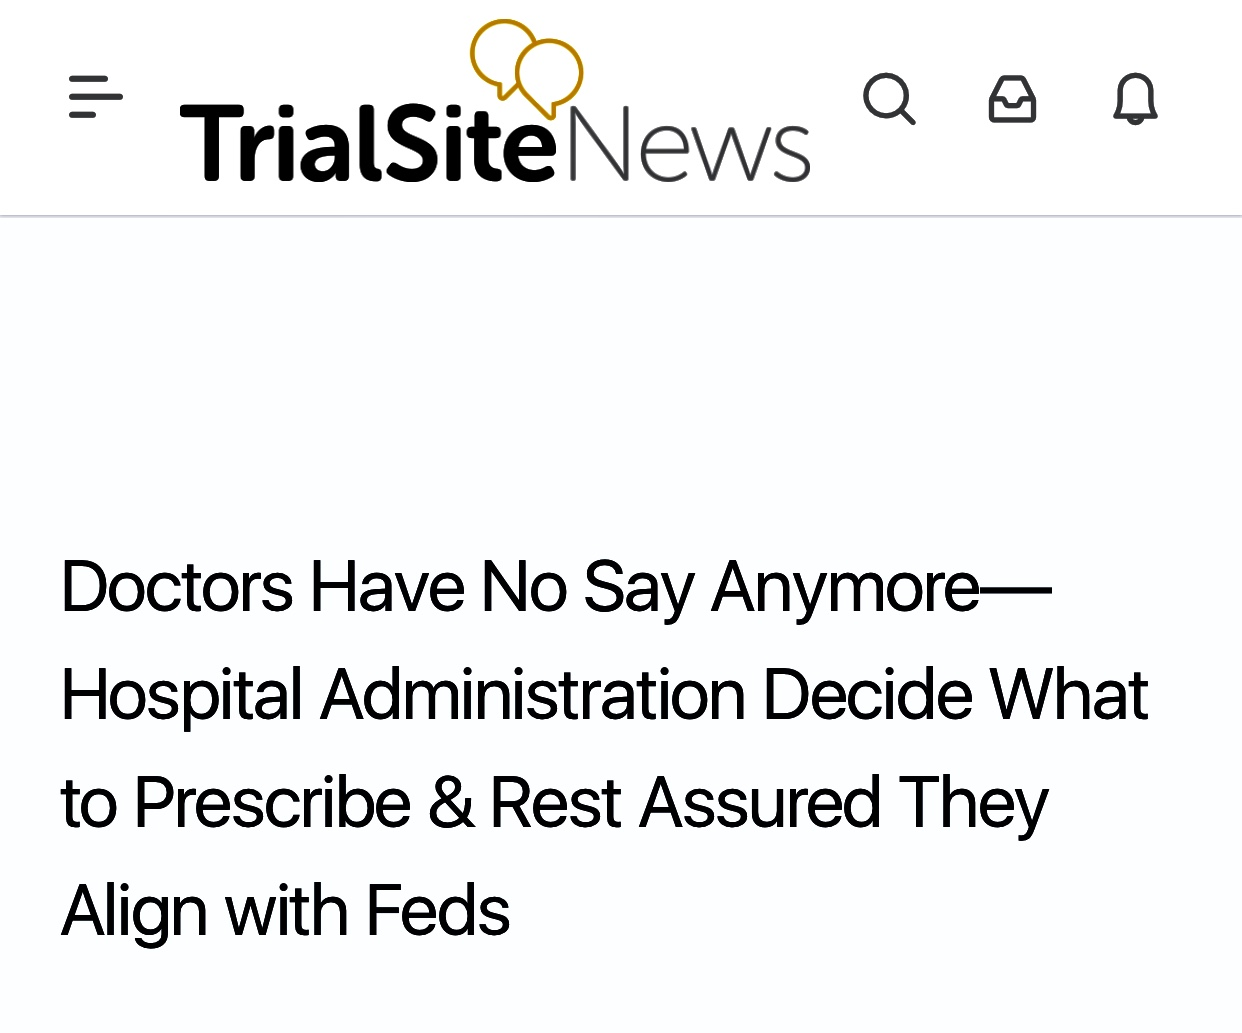 Doctors Have No Say Anymore—Hospital Administration Decide What to Prescribe & Rest Assured They Align with Feds